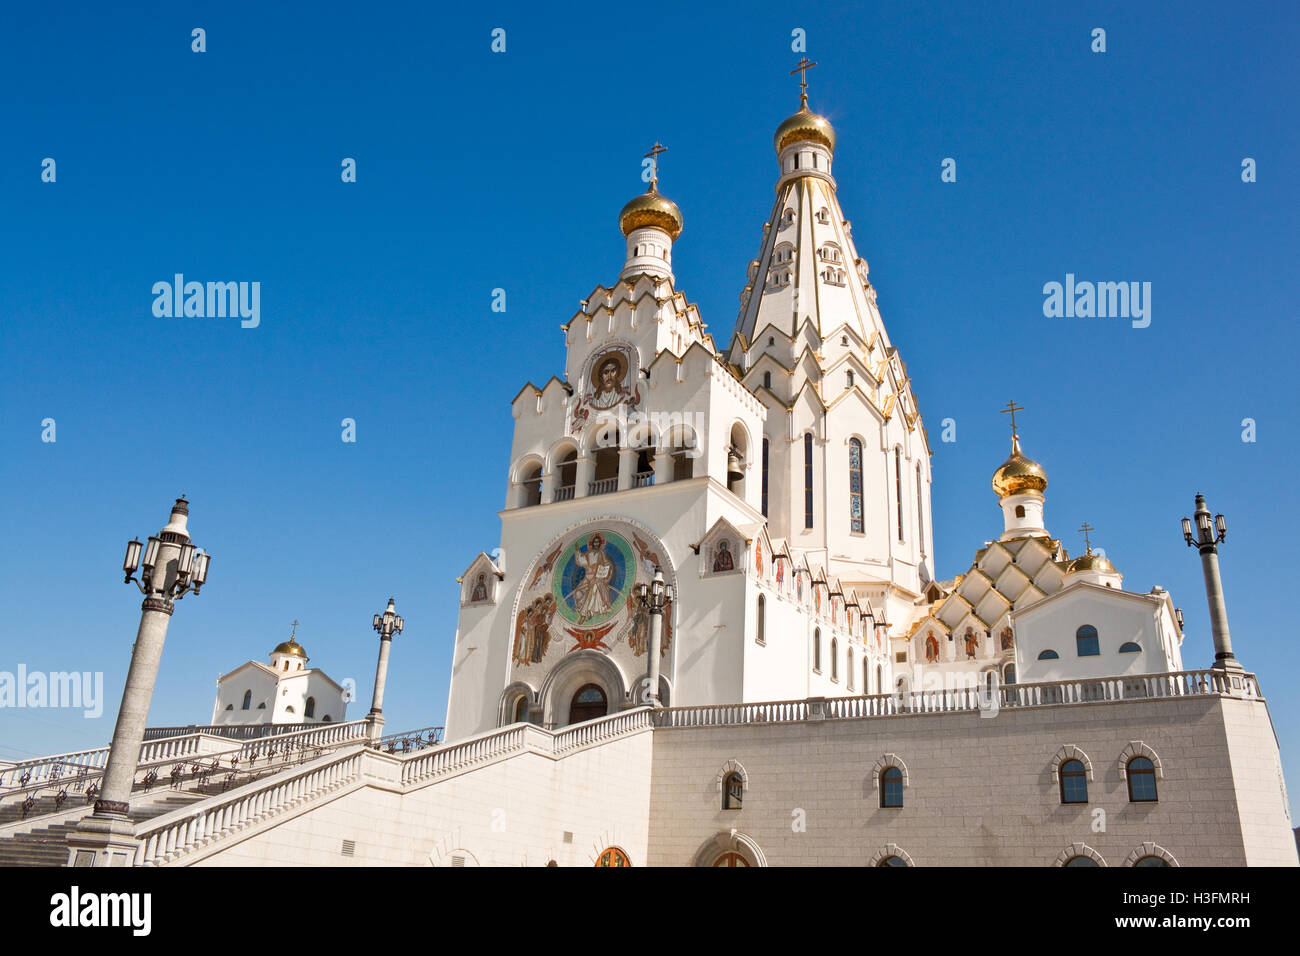 All saints orthodox  church in MInsk, Belarus - Stock Image